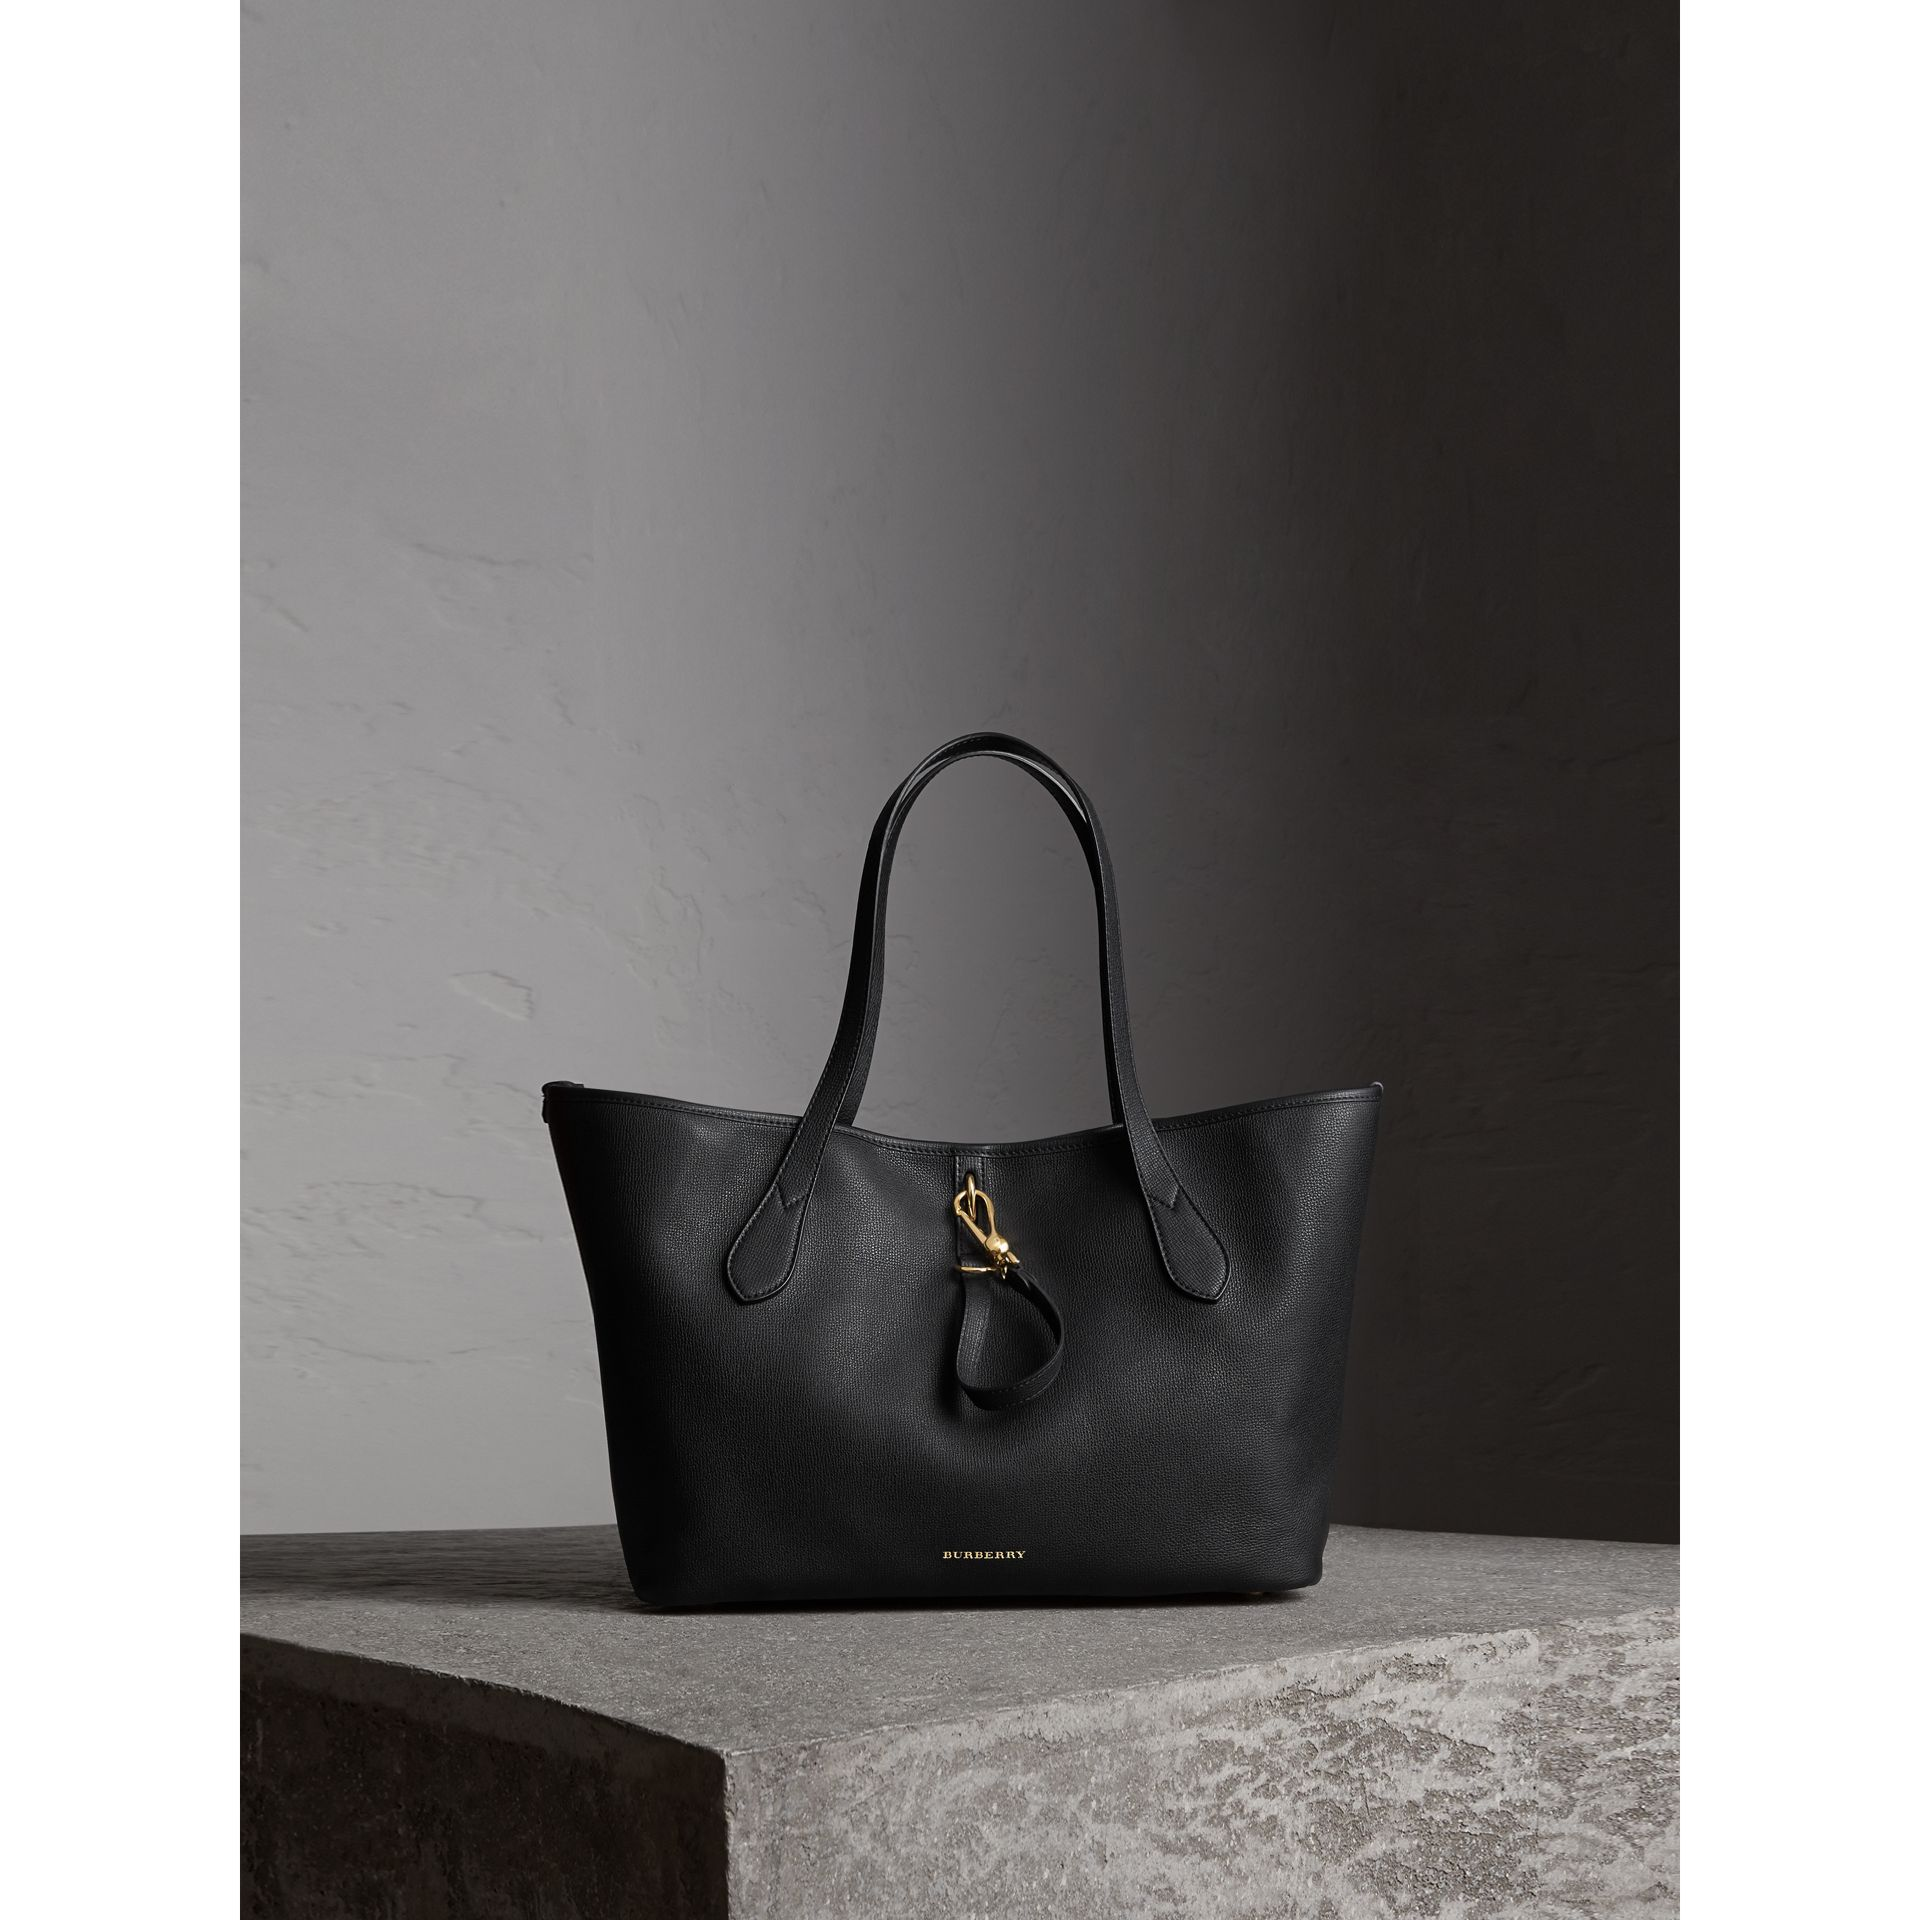 Medium Grainy Leather Tote Bag in Black - Women | Burberry Canada - gallery image 0